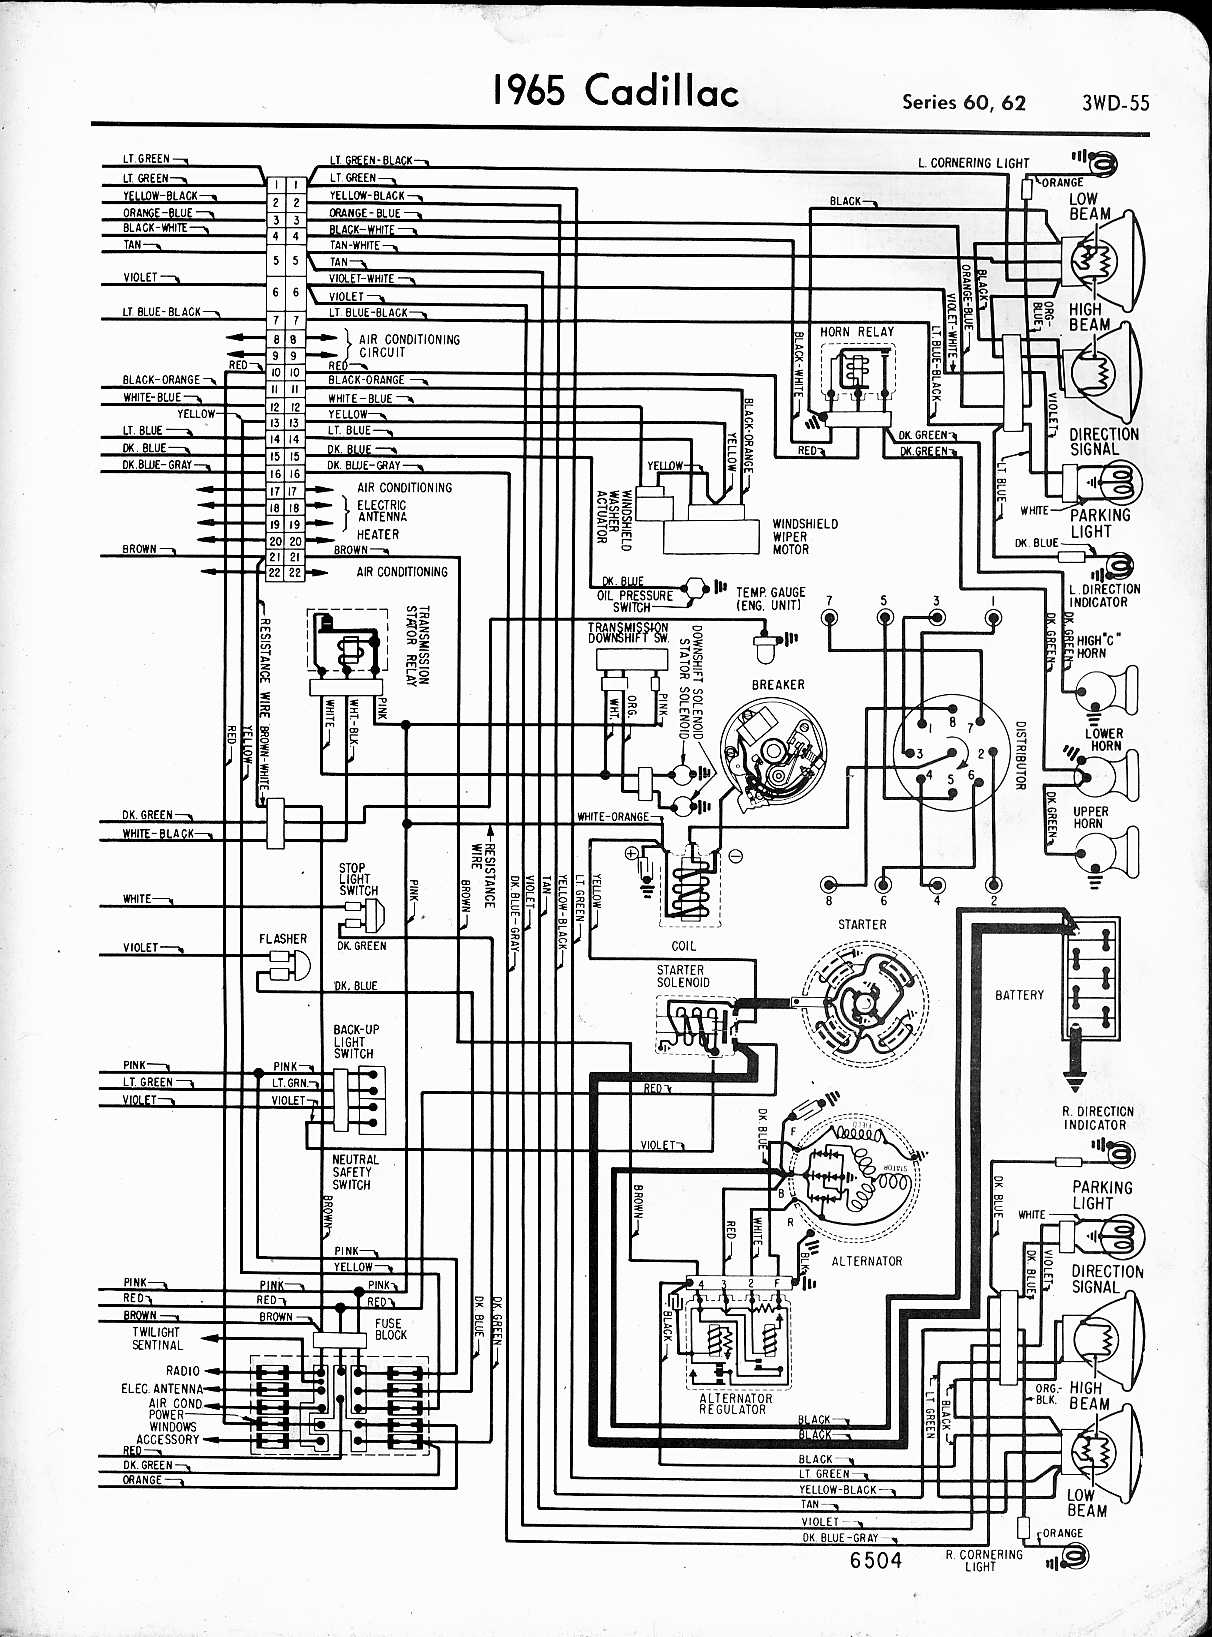 2004 Suzuki Forenza Wiring Diagram | Wiring Diagram on